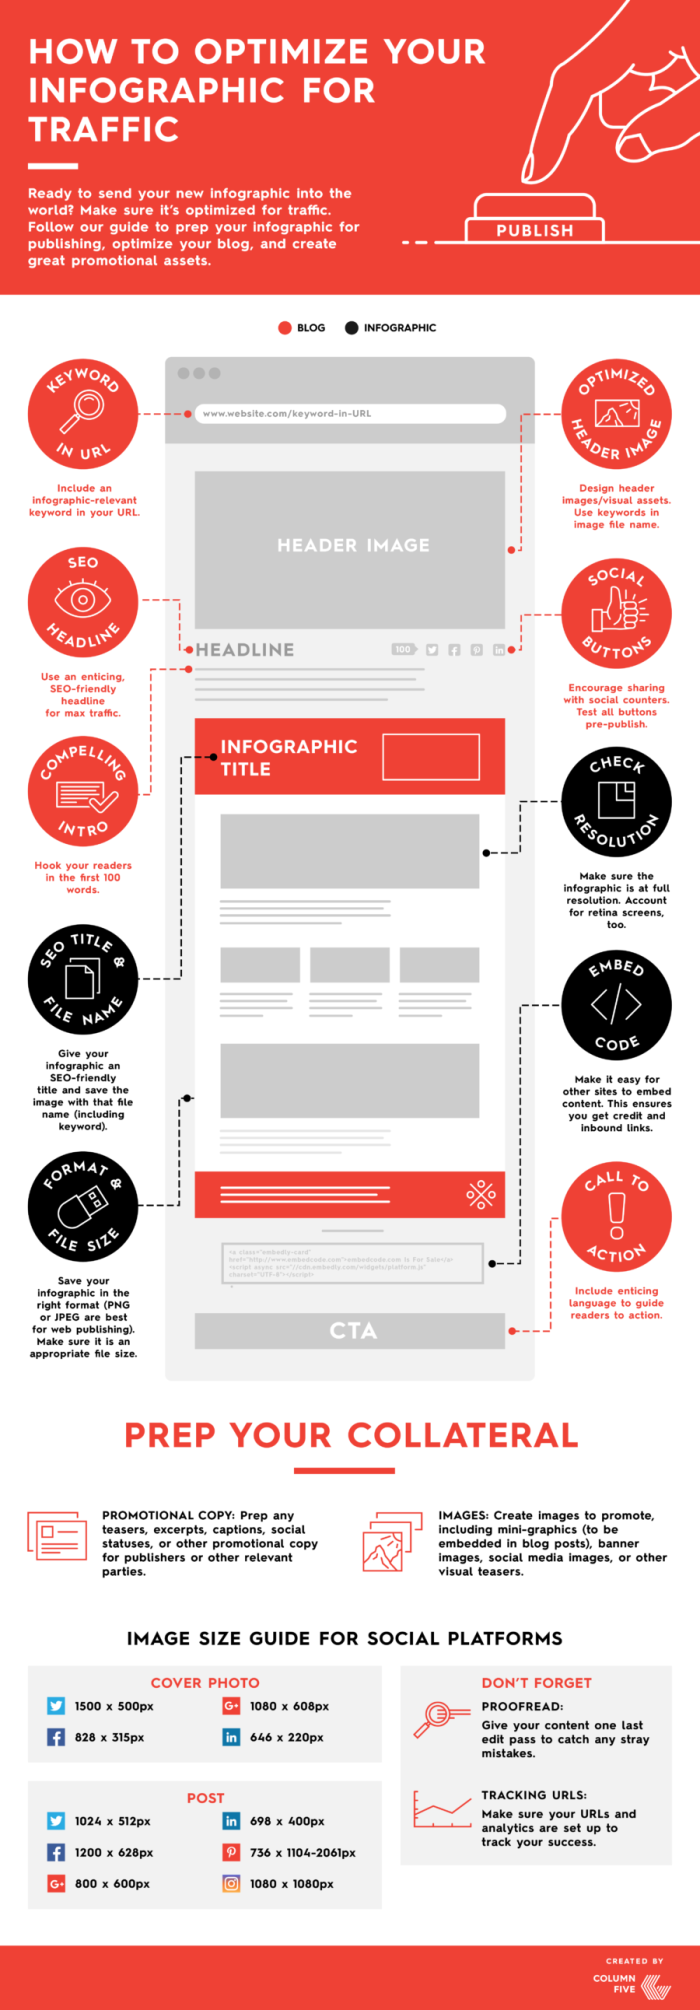 infographic-how-to-optimize-infographic-for-sharingfinal-01-e1473795514194